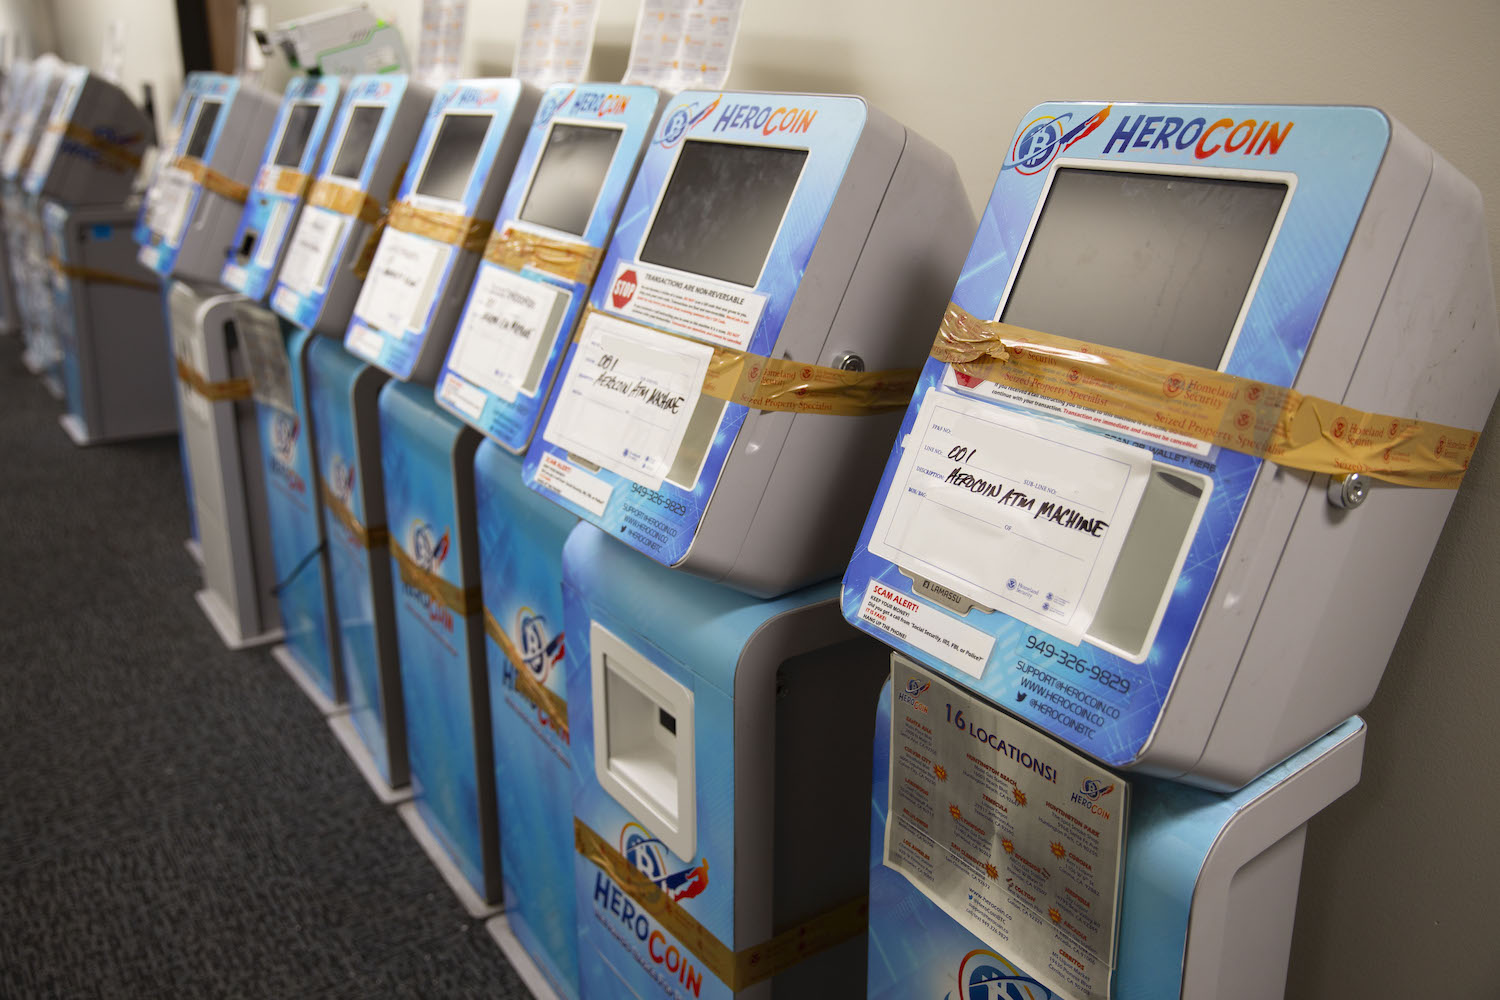 With Latest Deal, Crypto Kiosk Provider Coin Cloud Set to Reach 2000 Installations